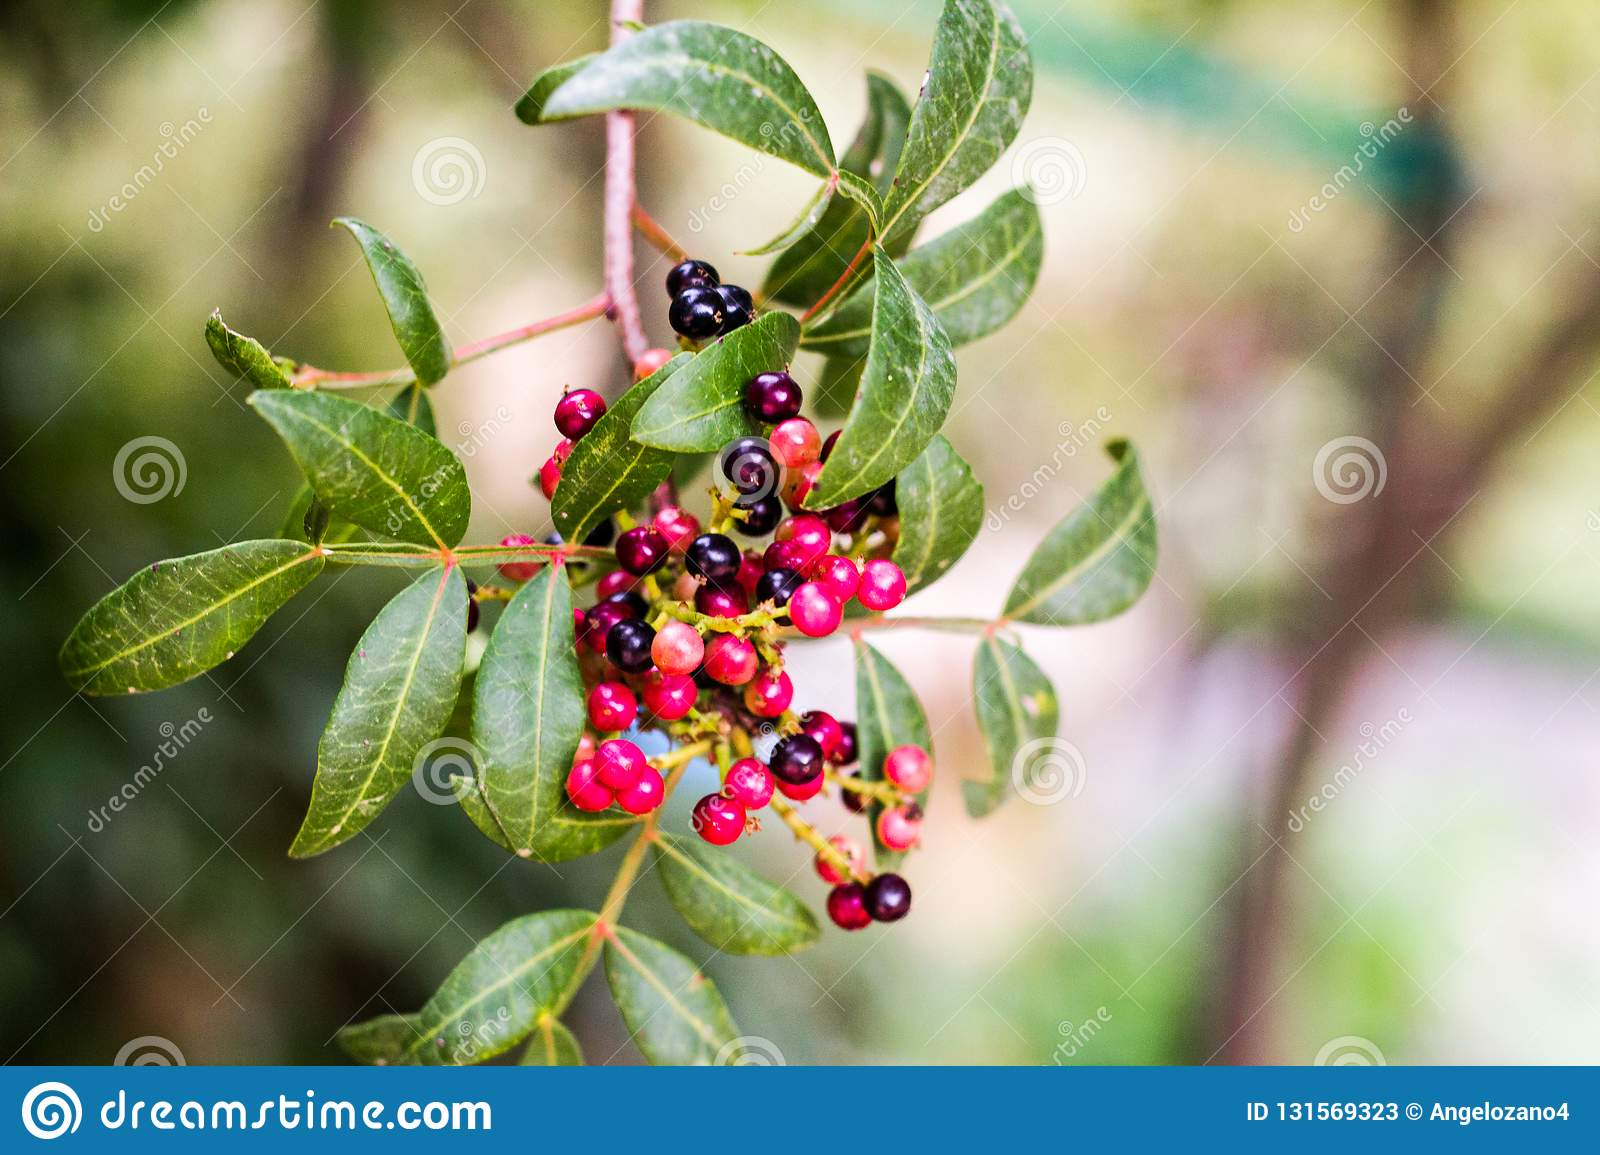 A bunch of red berries in a tree